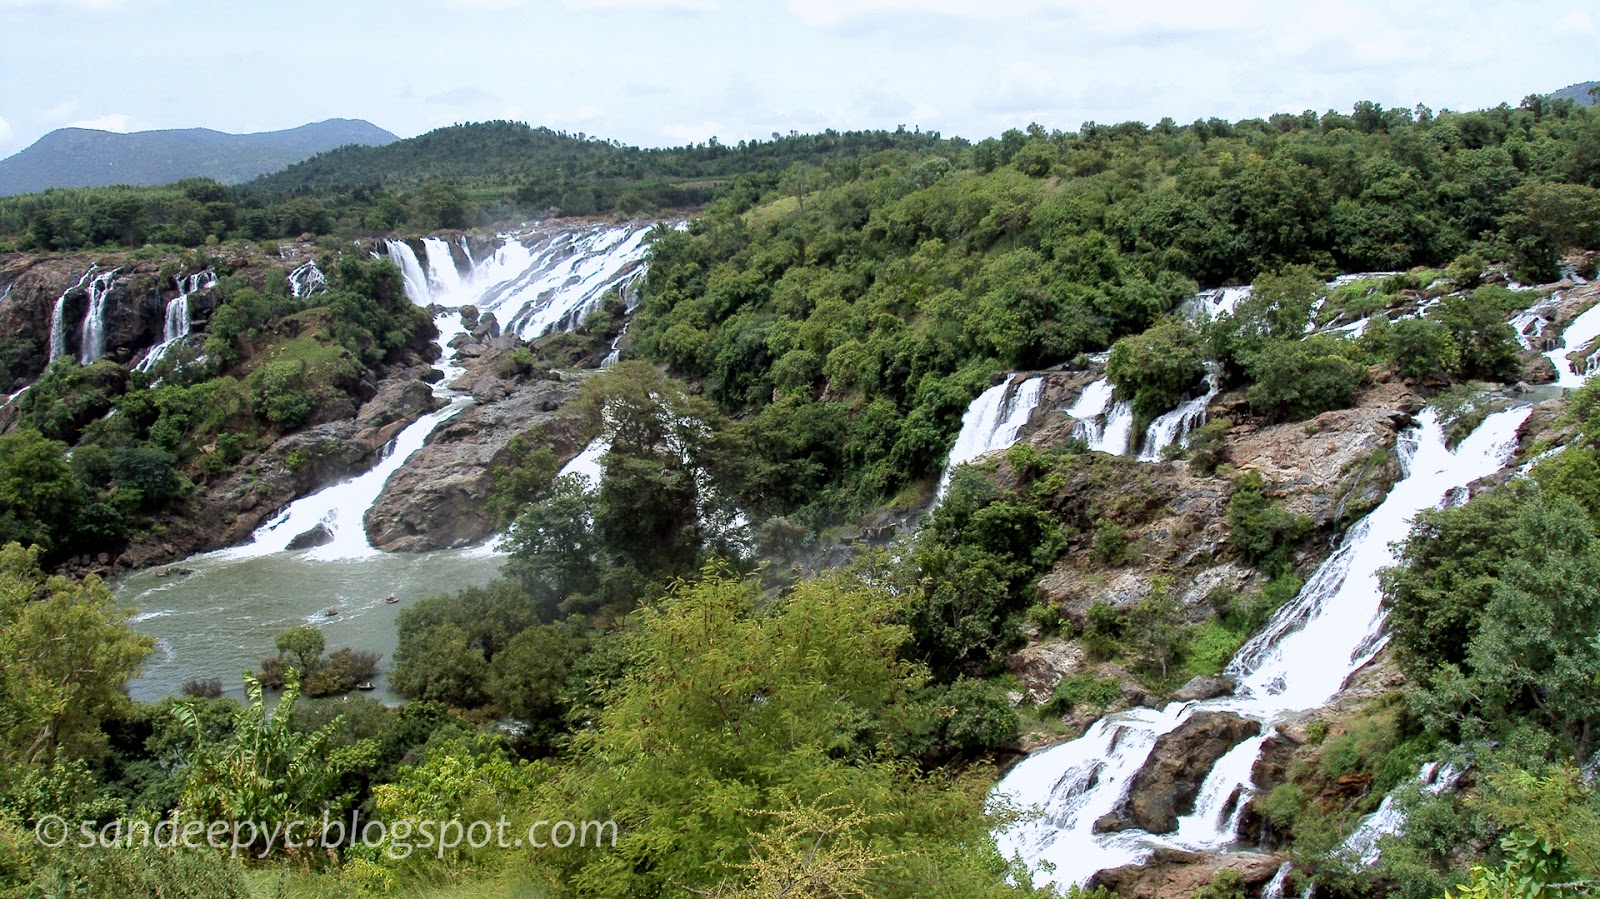 Full view of Bharachukki falls as seen from the view point